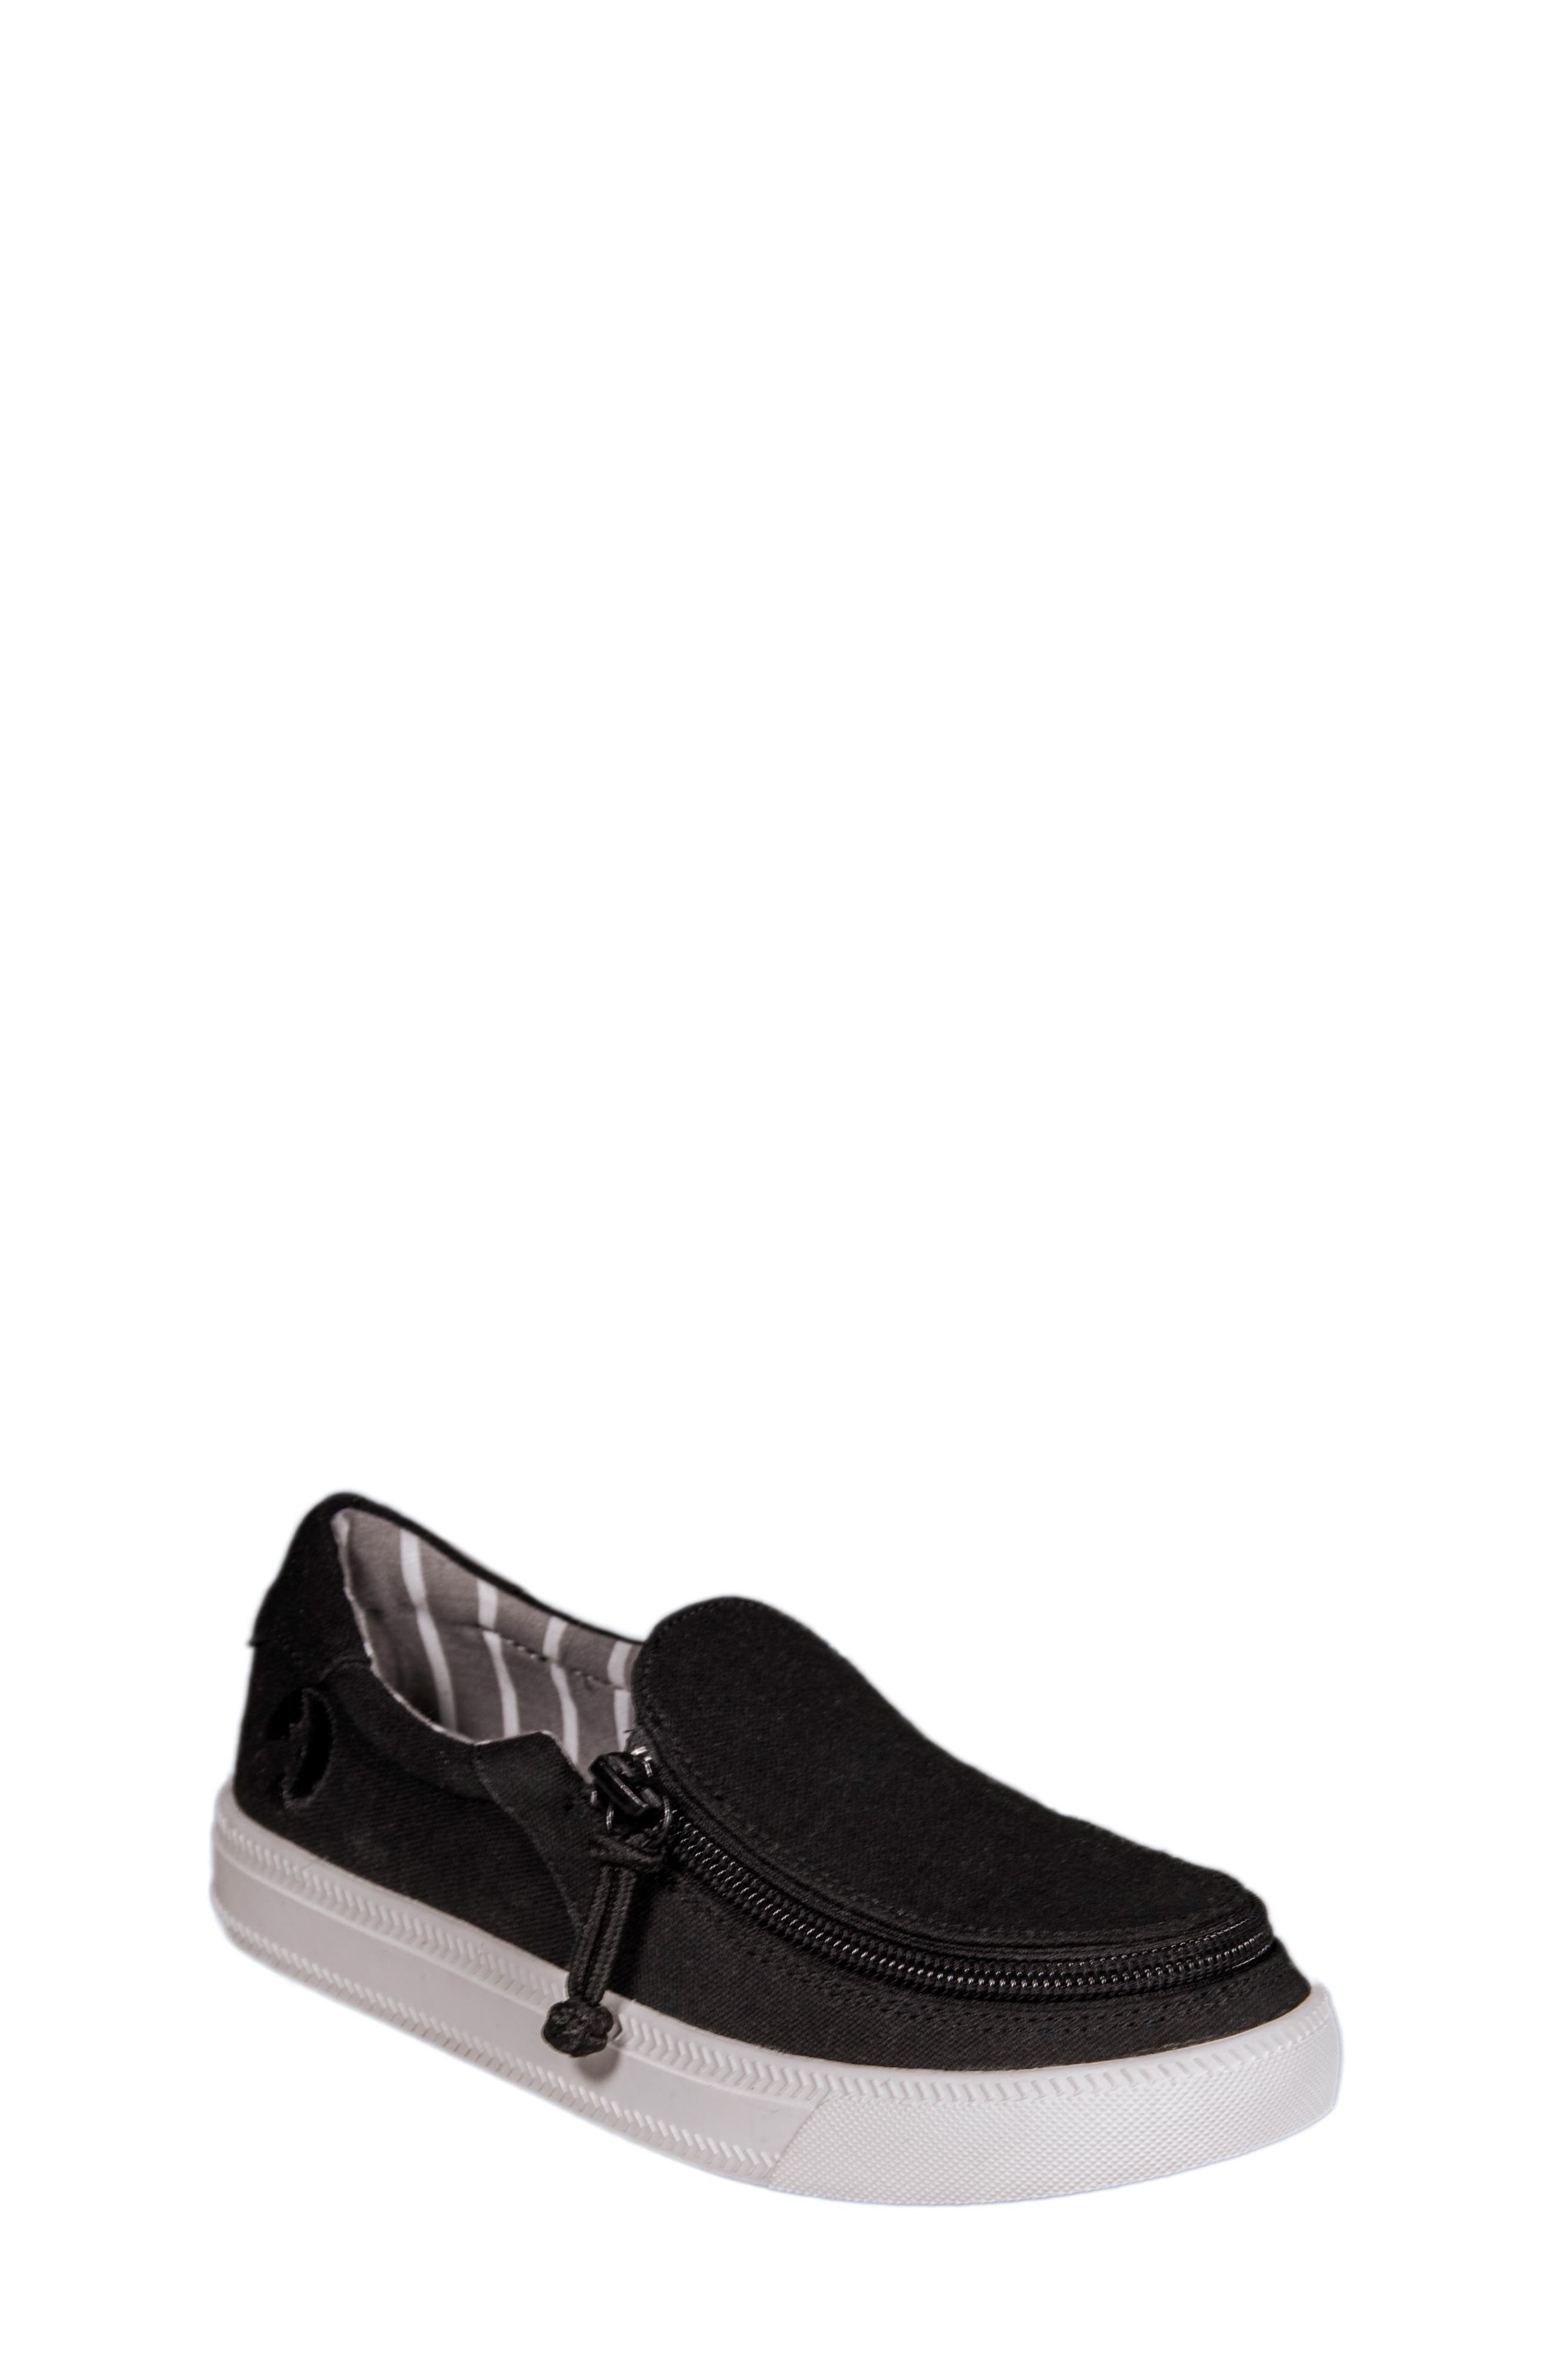 BILLY Footwear Zip Around Low Top Sneaker (Toddler, Little Kid & Big Kid)